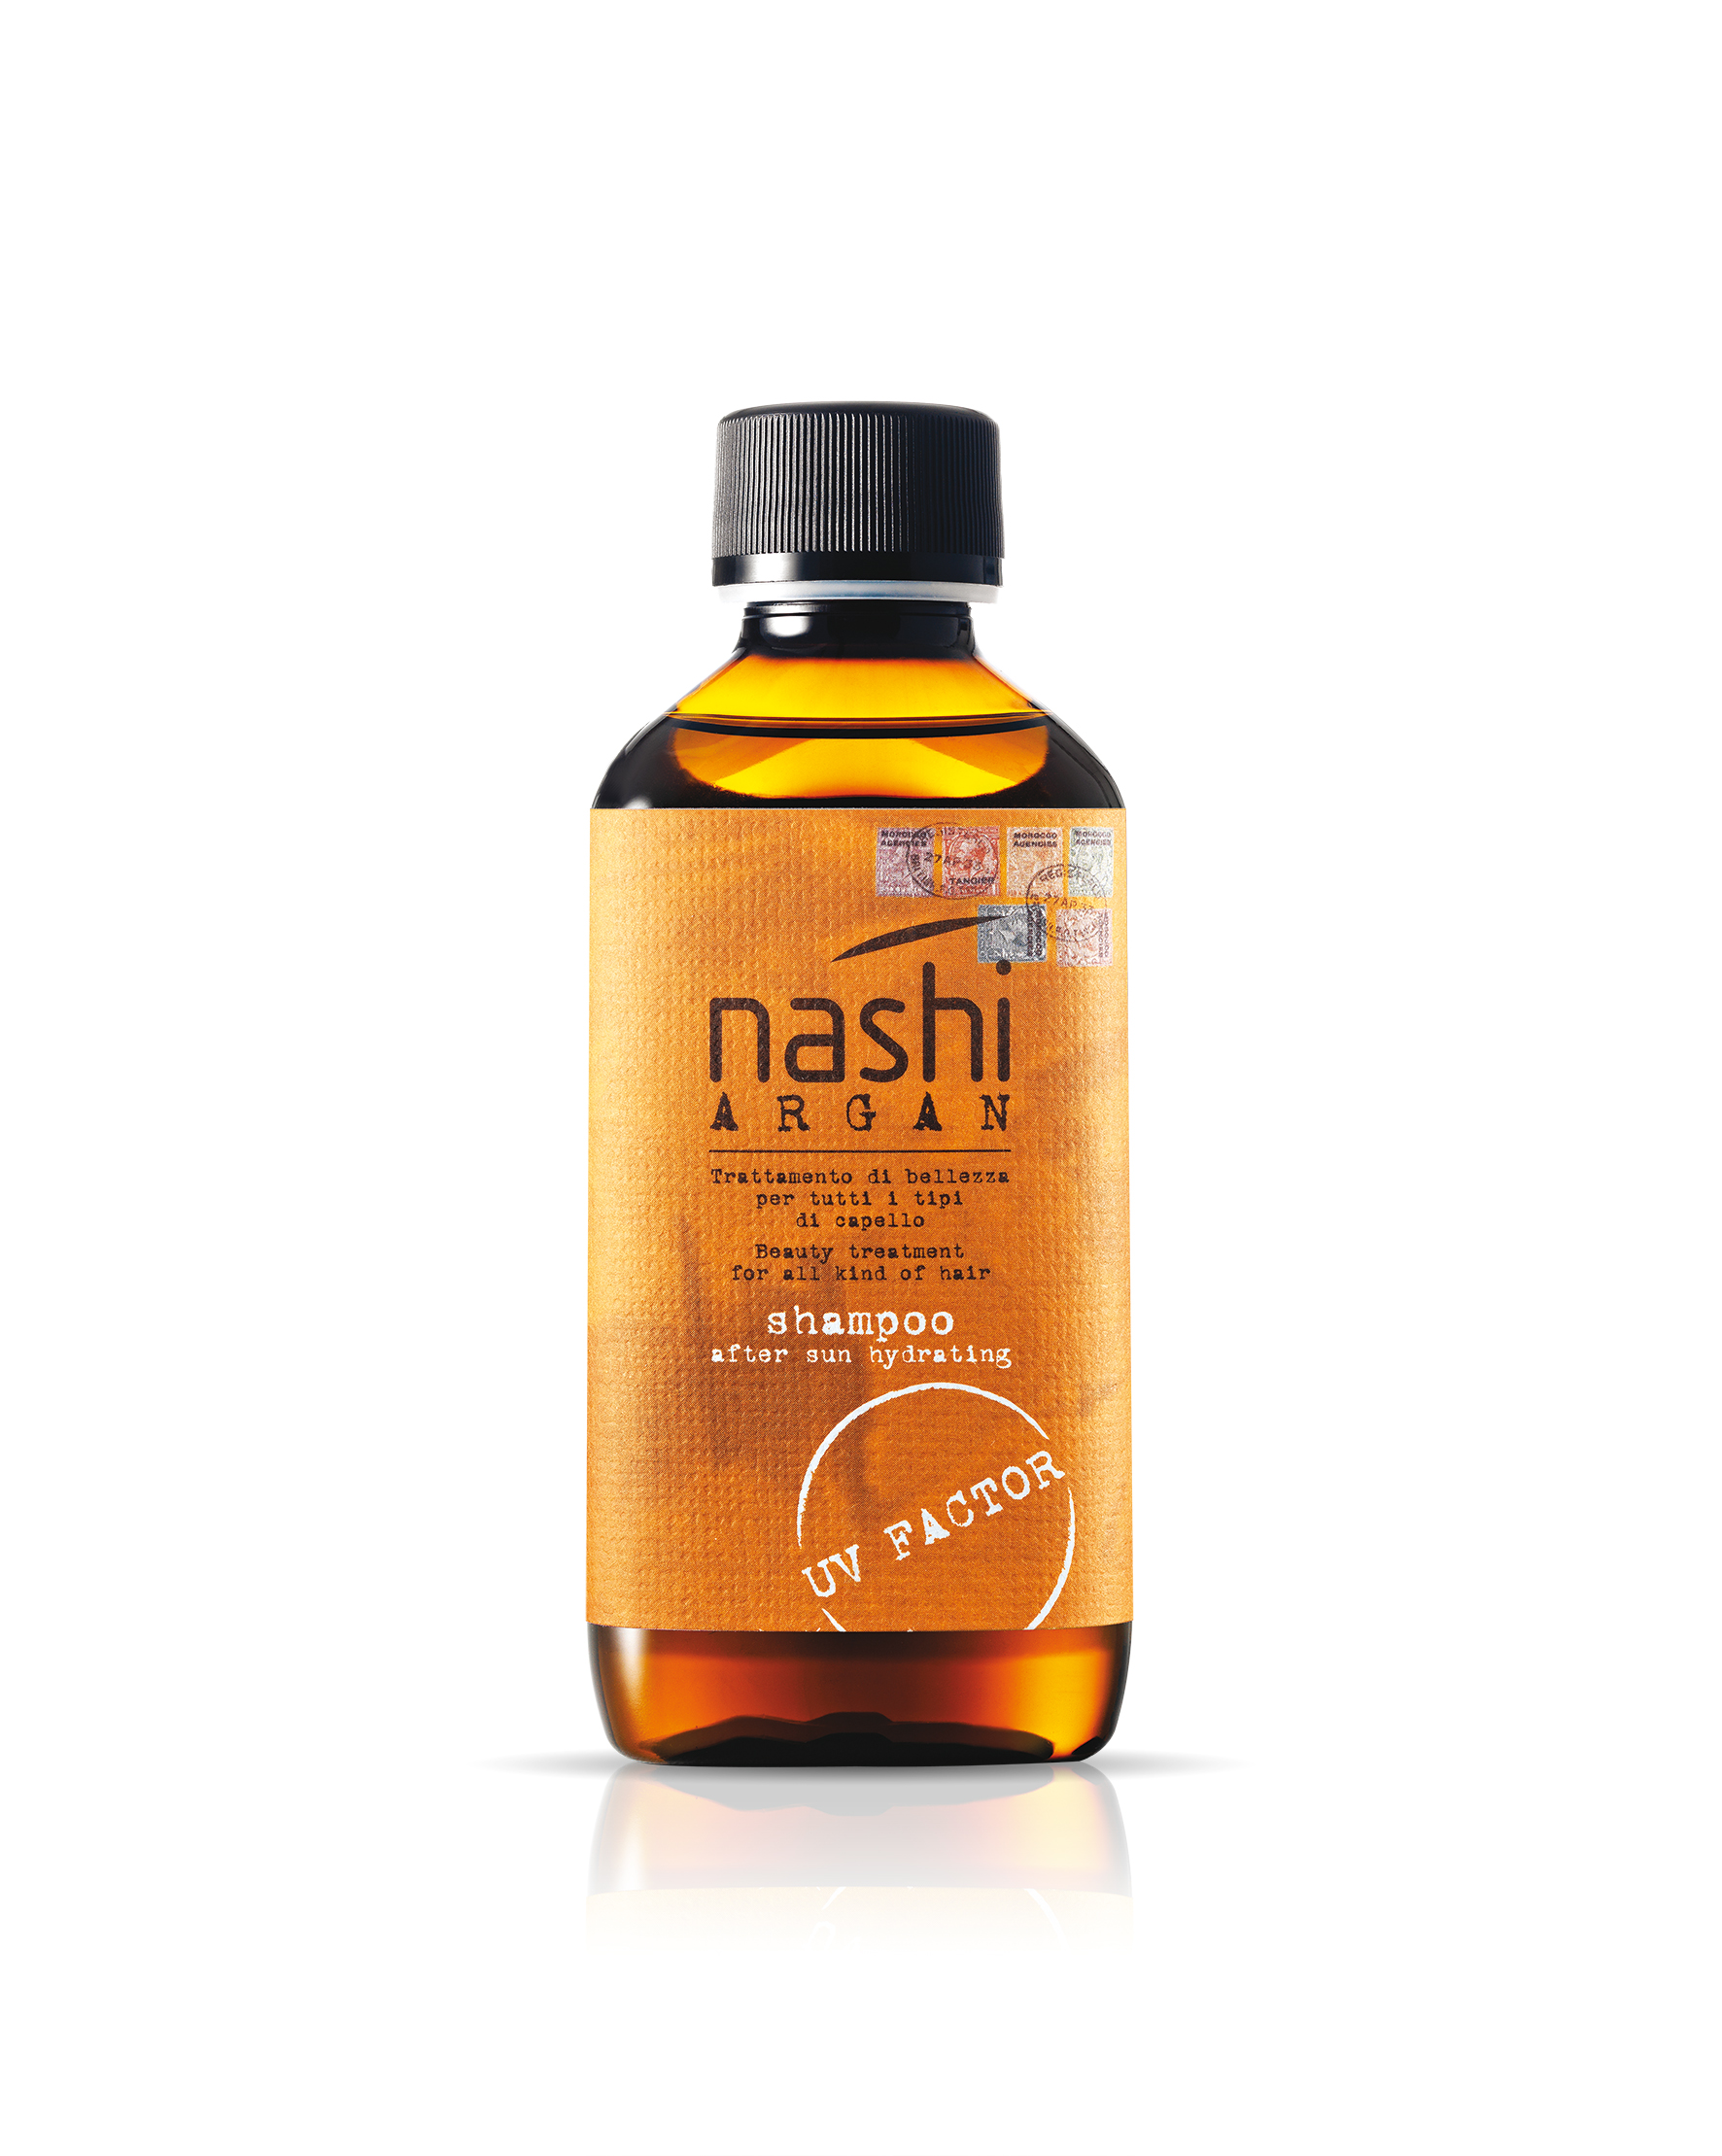 NASHI ARGAN Sun Shampoo After Sun Hydrating_200 ml copia